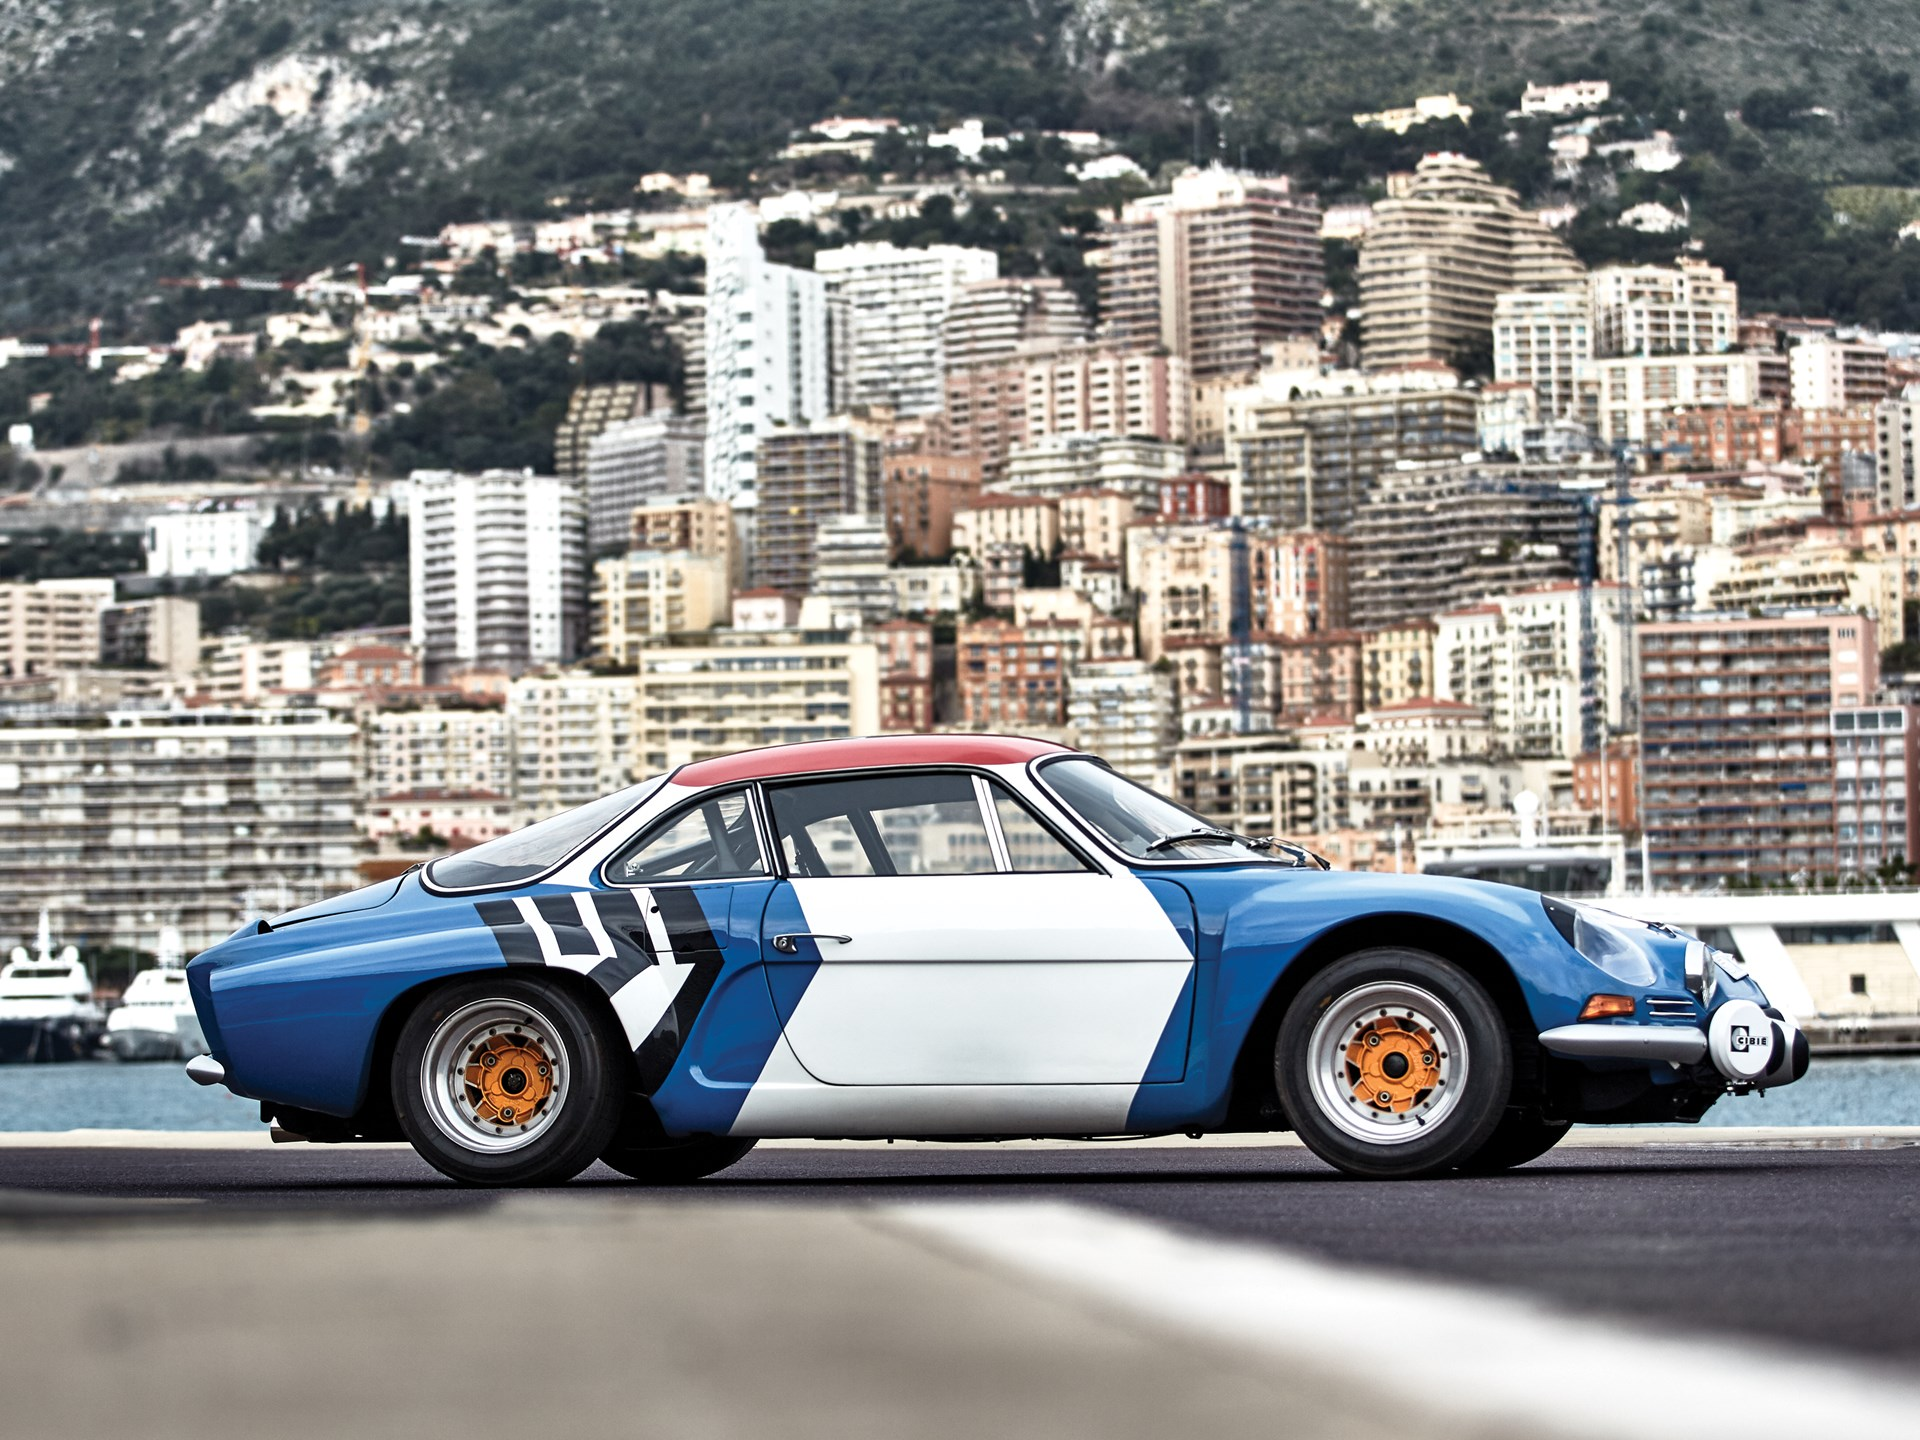 1974 Renault Alpine A110 1800 Group 4 Works | Top Speed